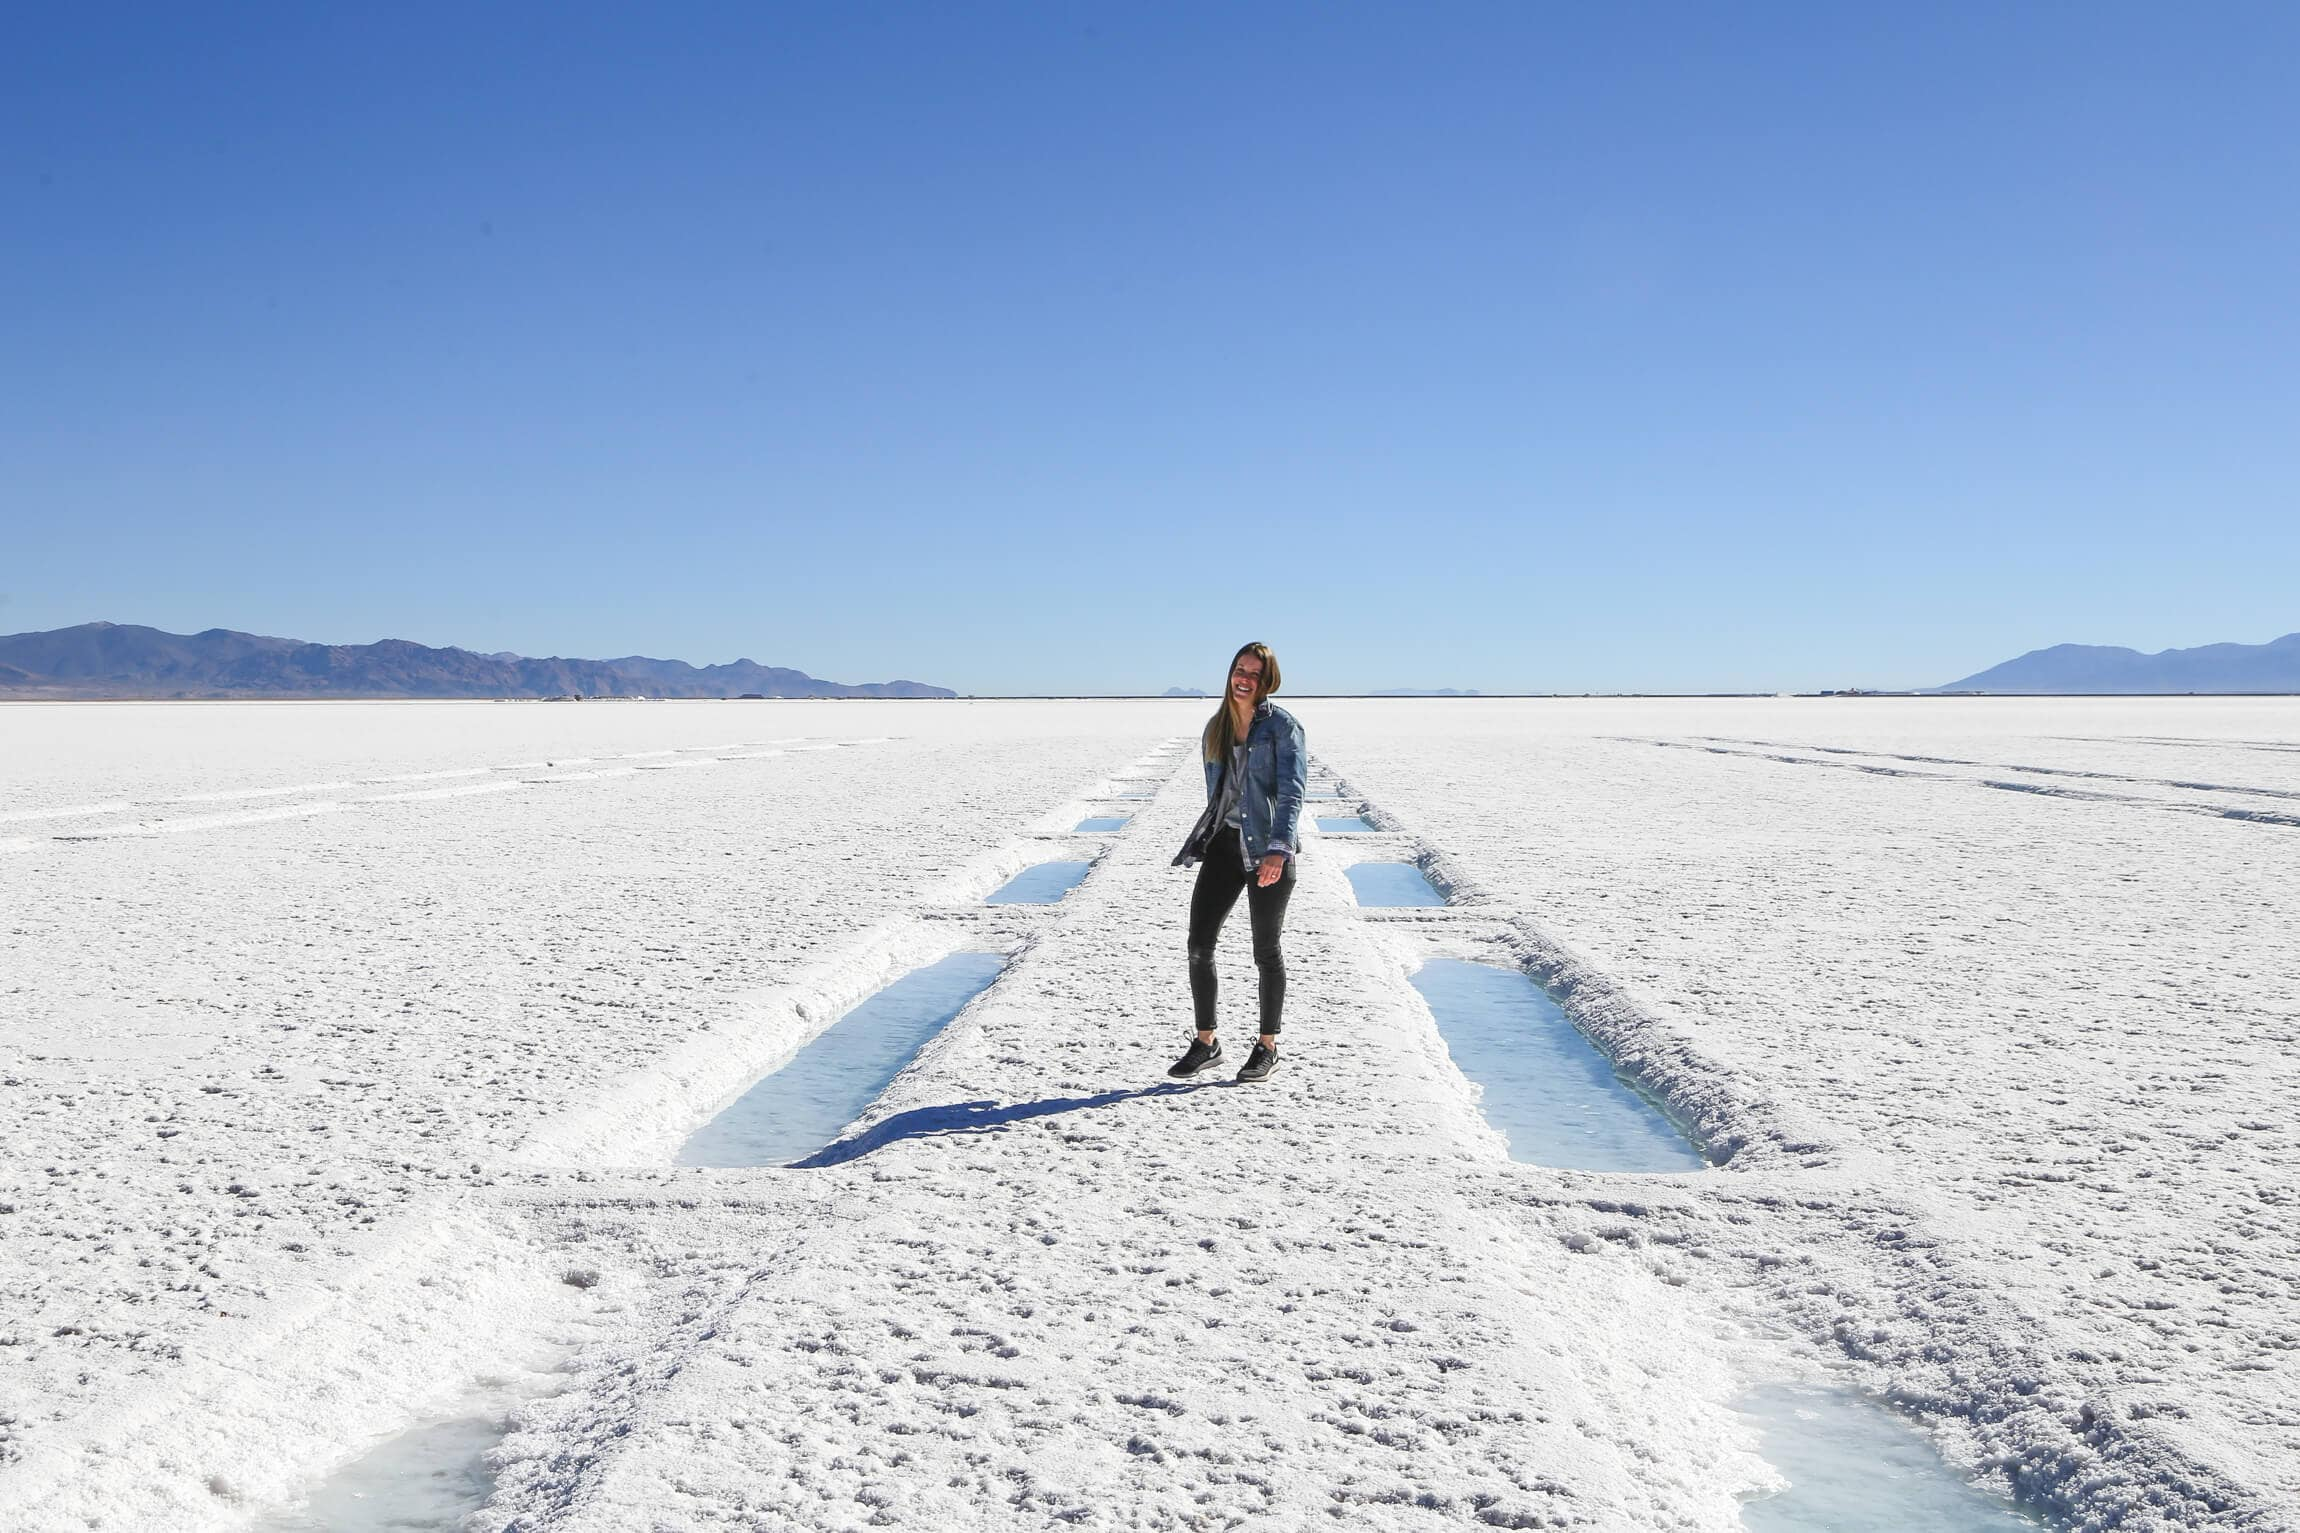 A woman walks between puddles of water on salt falts in Argentina